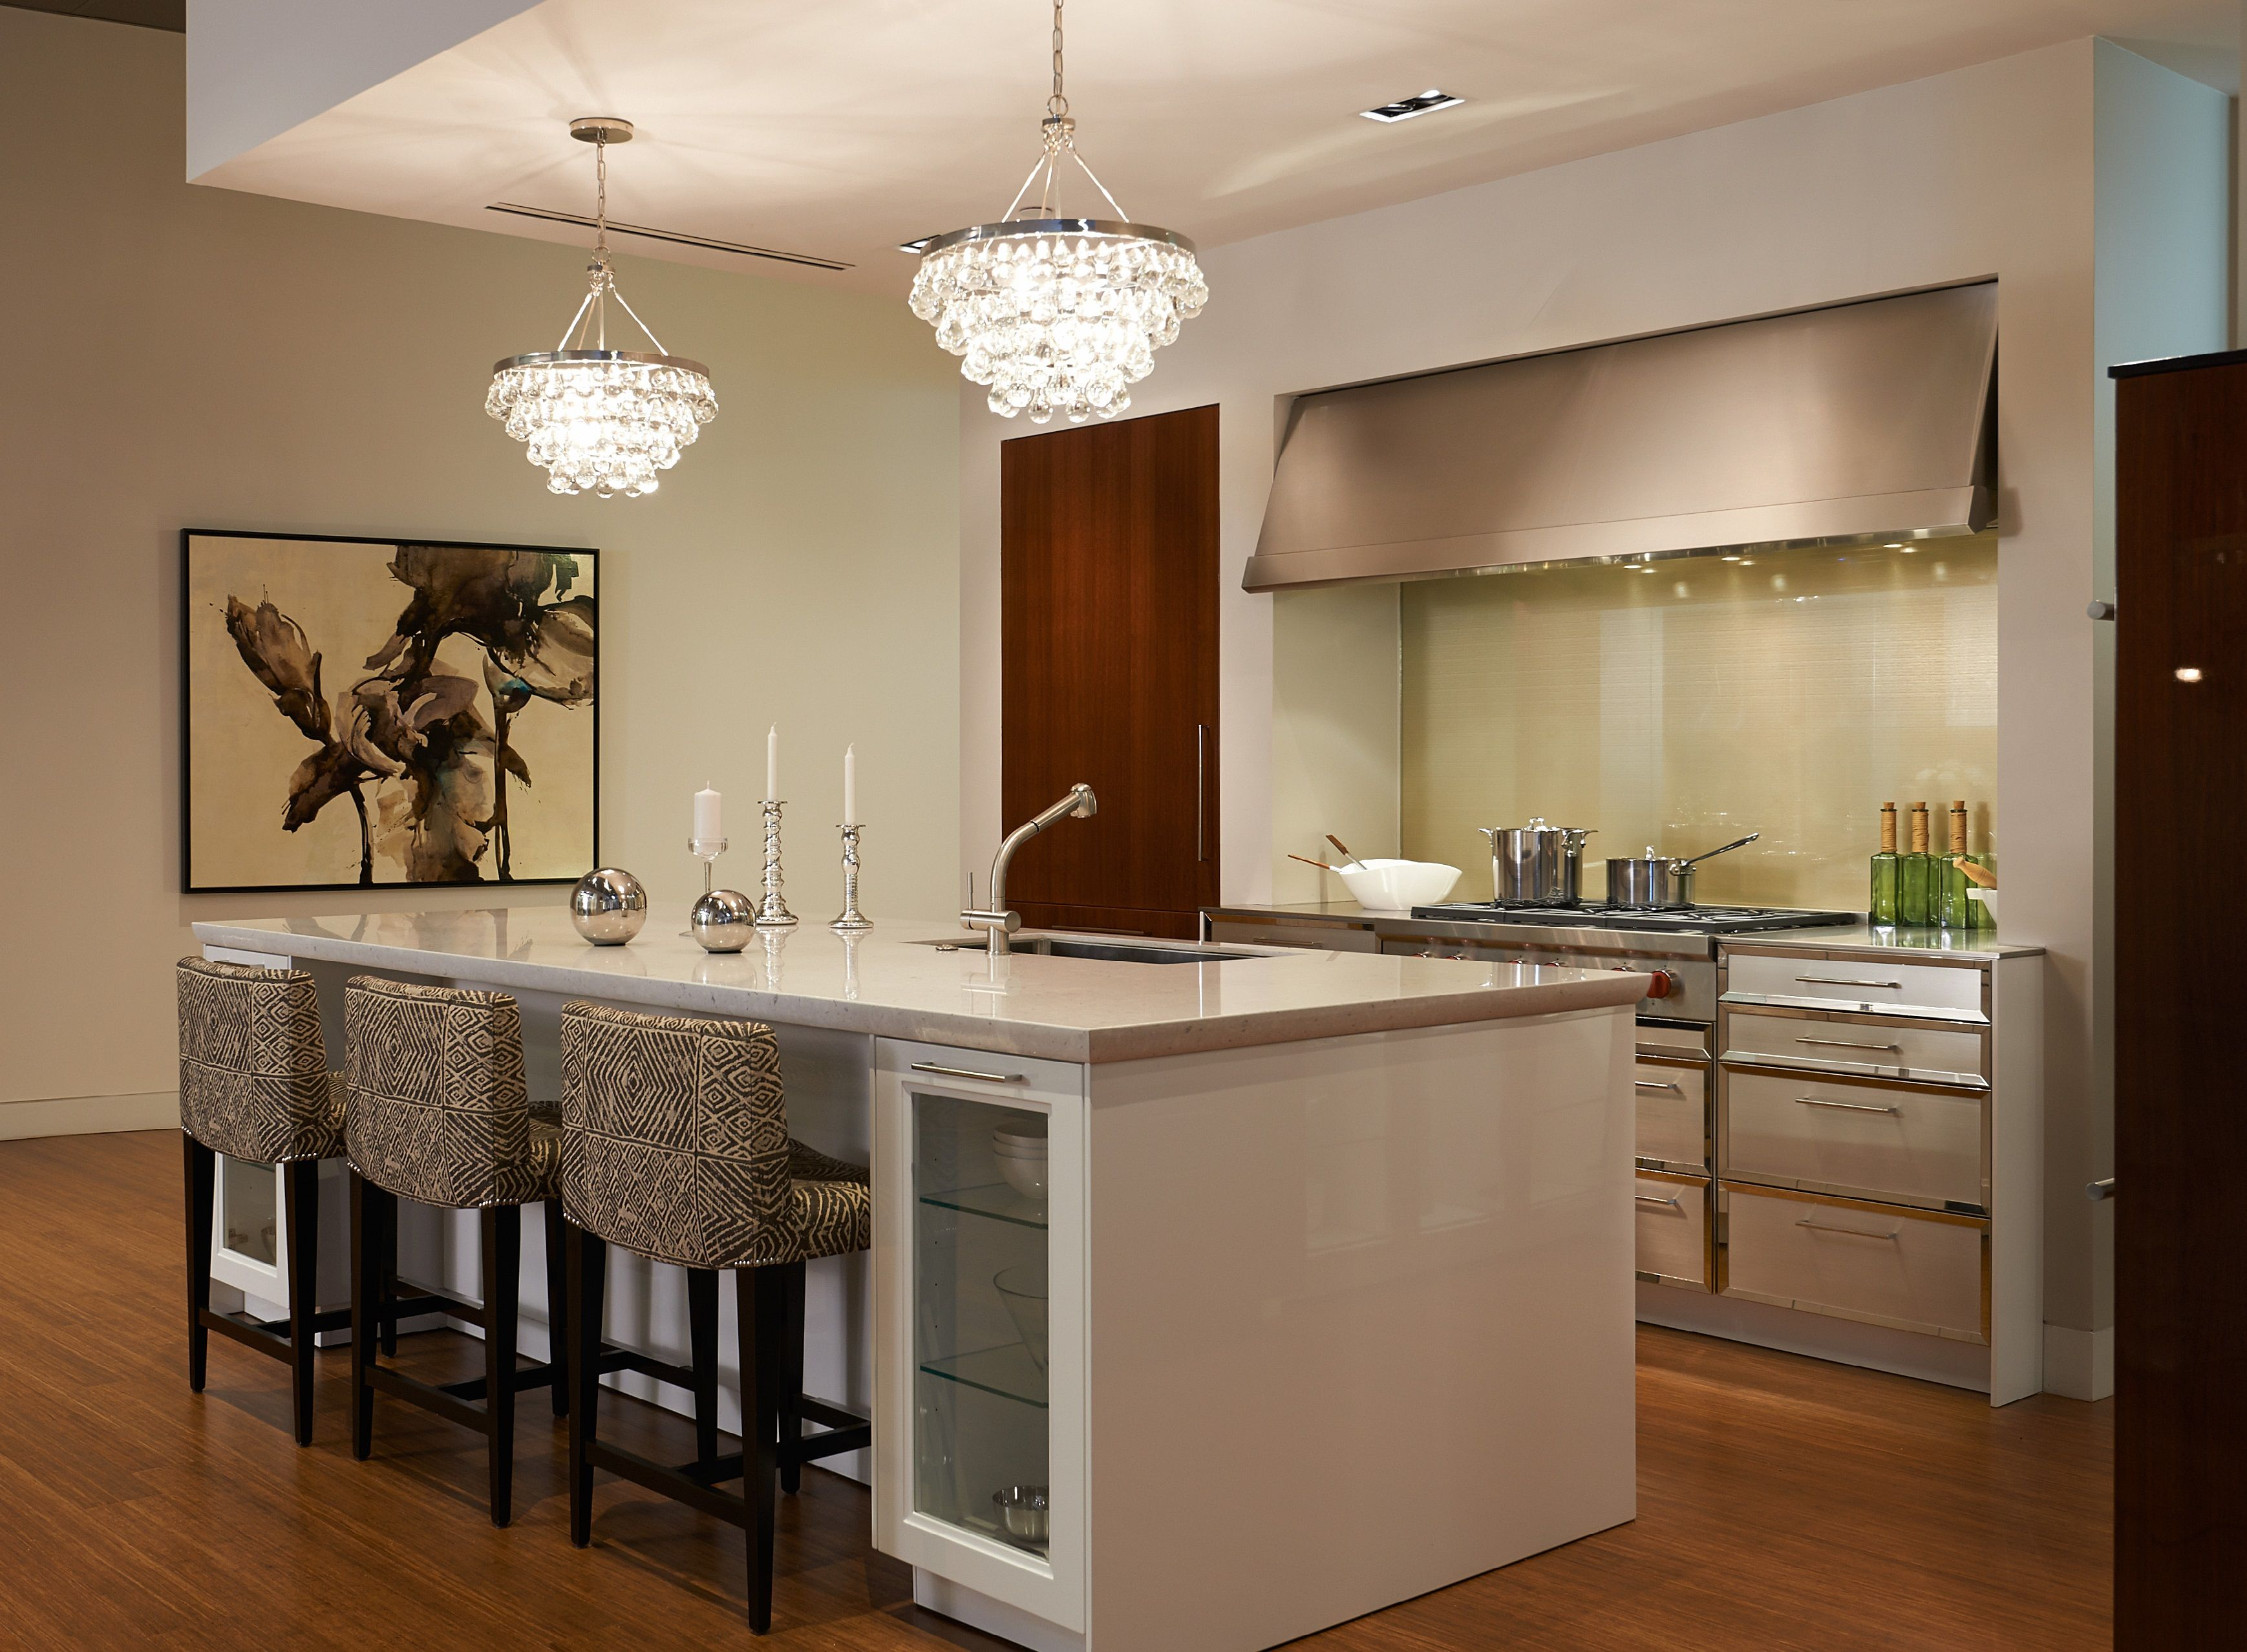 Attractive Contemporary Kitchen Display At The Fretz Corporation Showroom Located At  The Philadelphia Navy Yard Featuring Sub